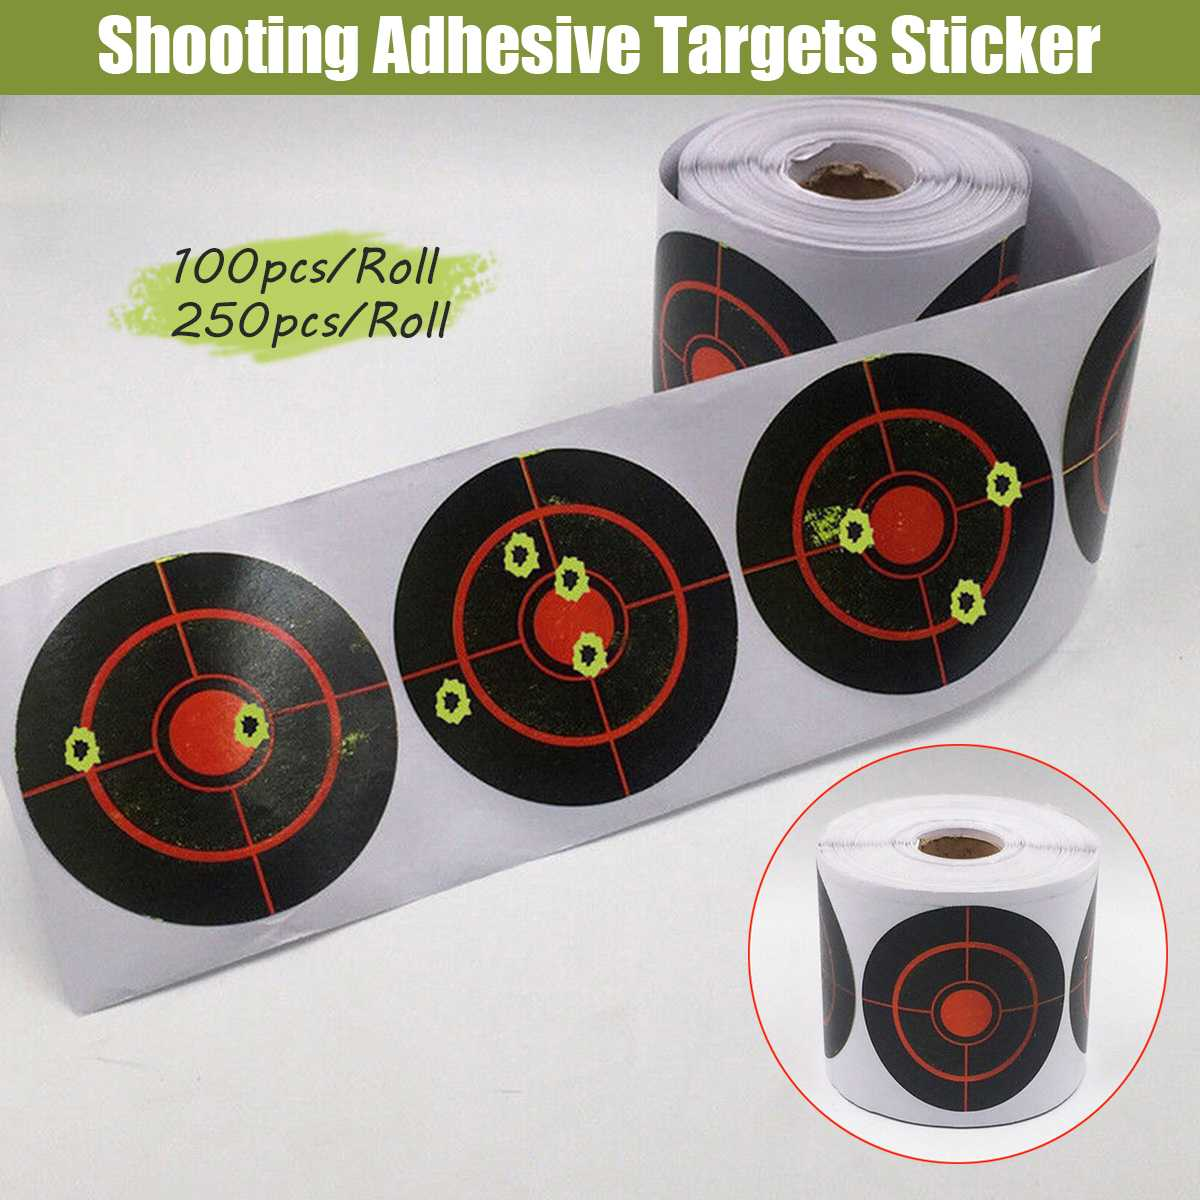 100/250pcs/Rol Shooting Adhesive Targets Splatter Reactive Target Sticker 7.5cm For Y Bow Hunting Shooting Practice